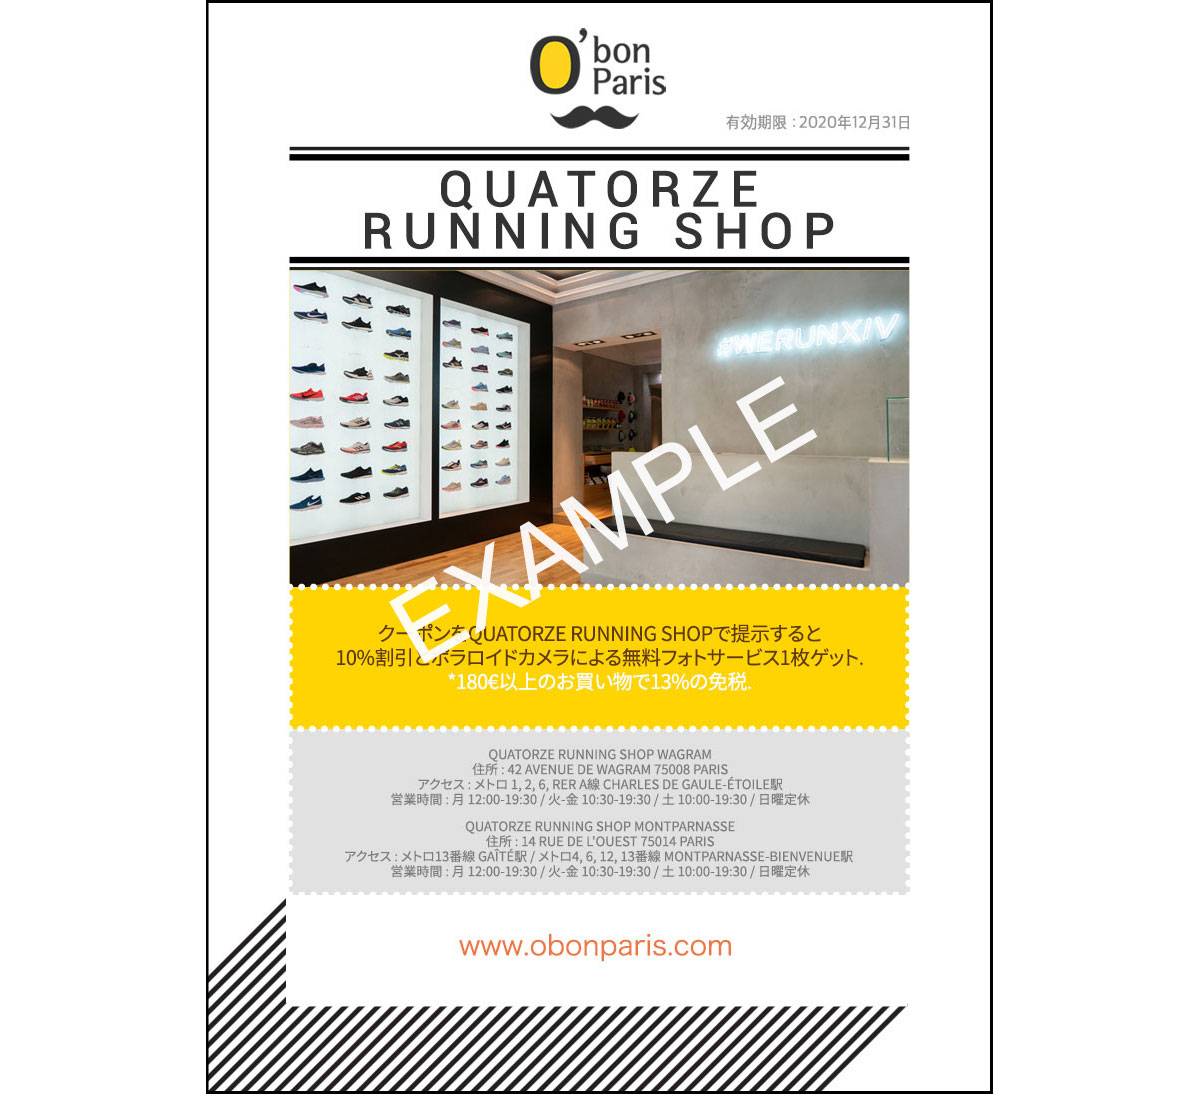 Quatorze Running Shop coupon